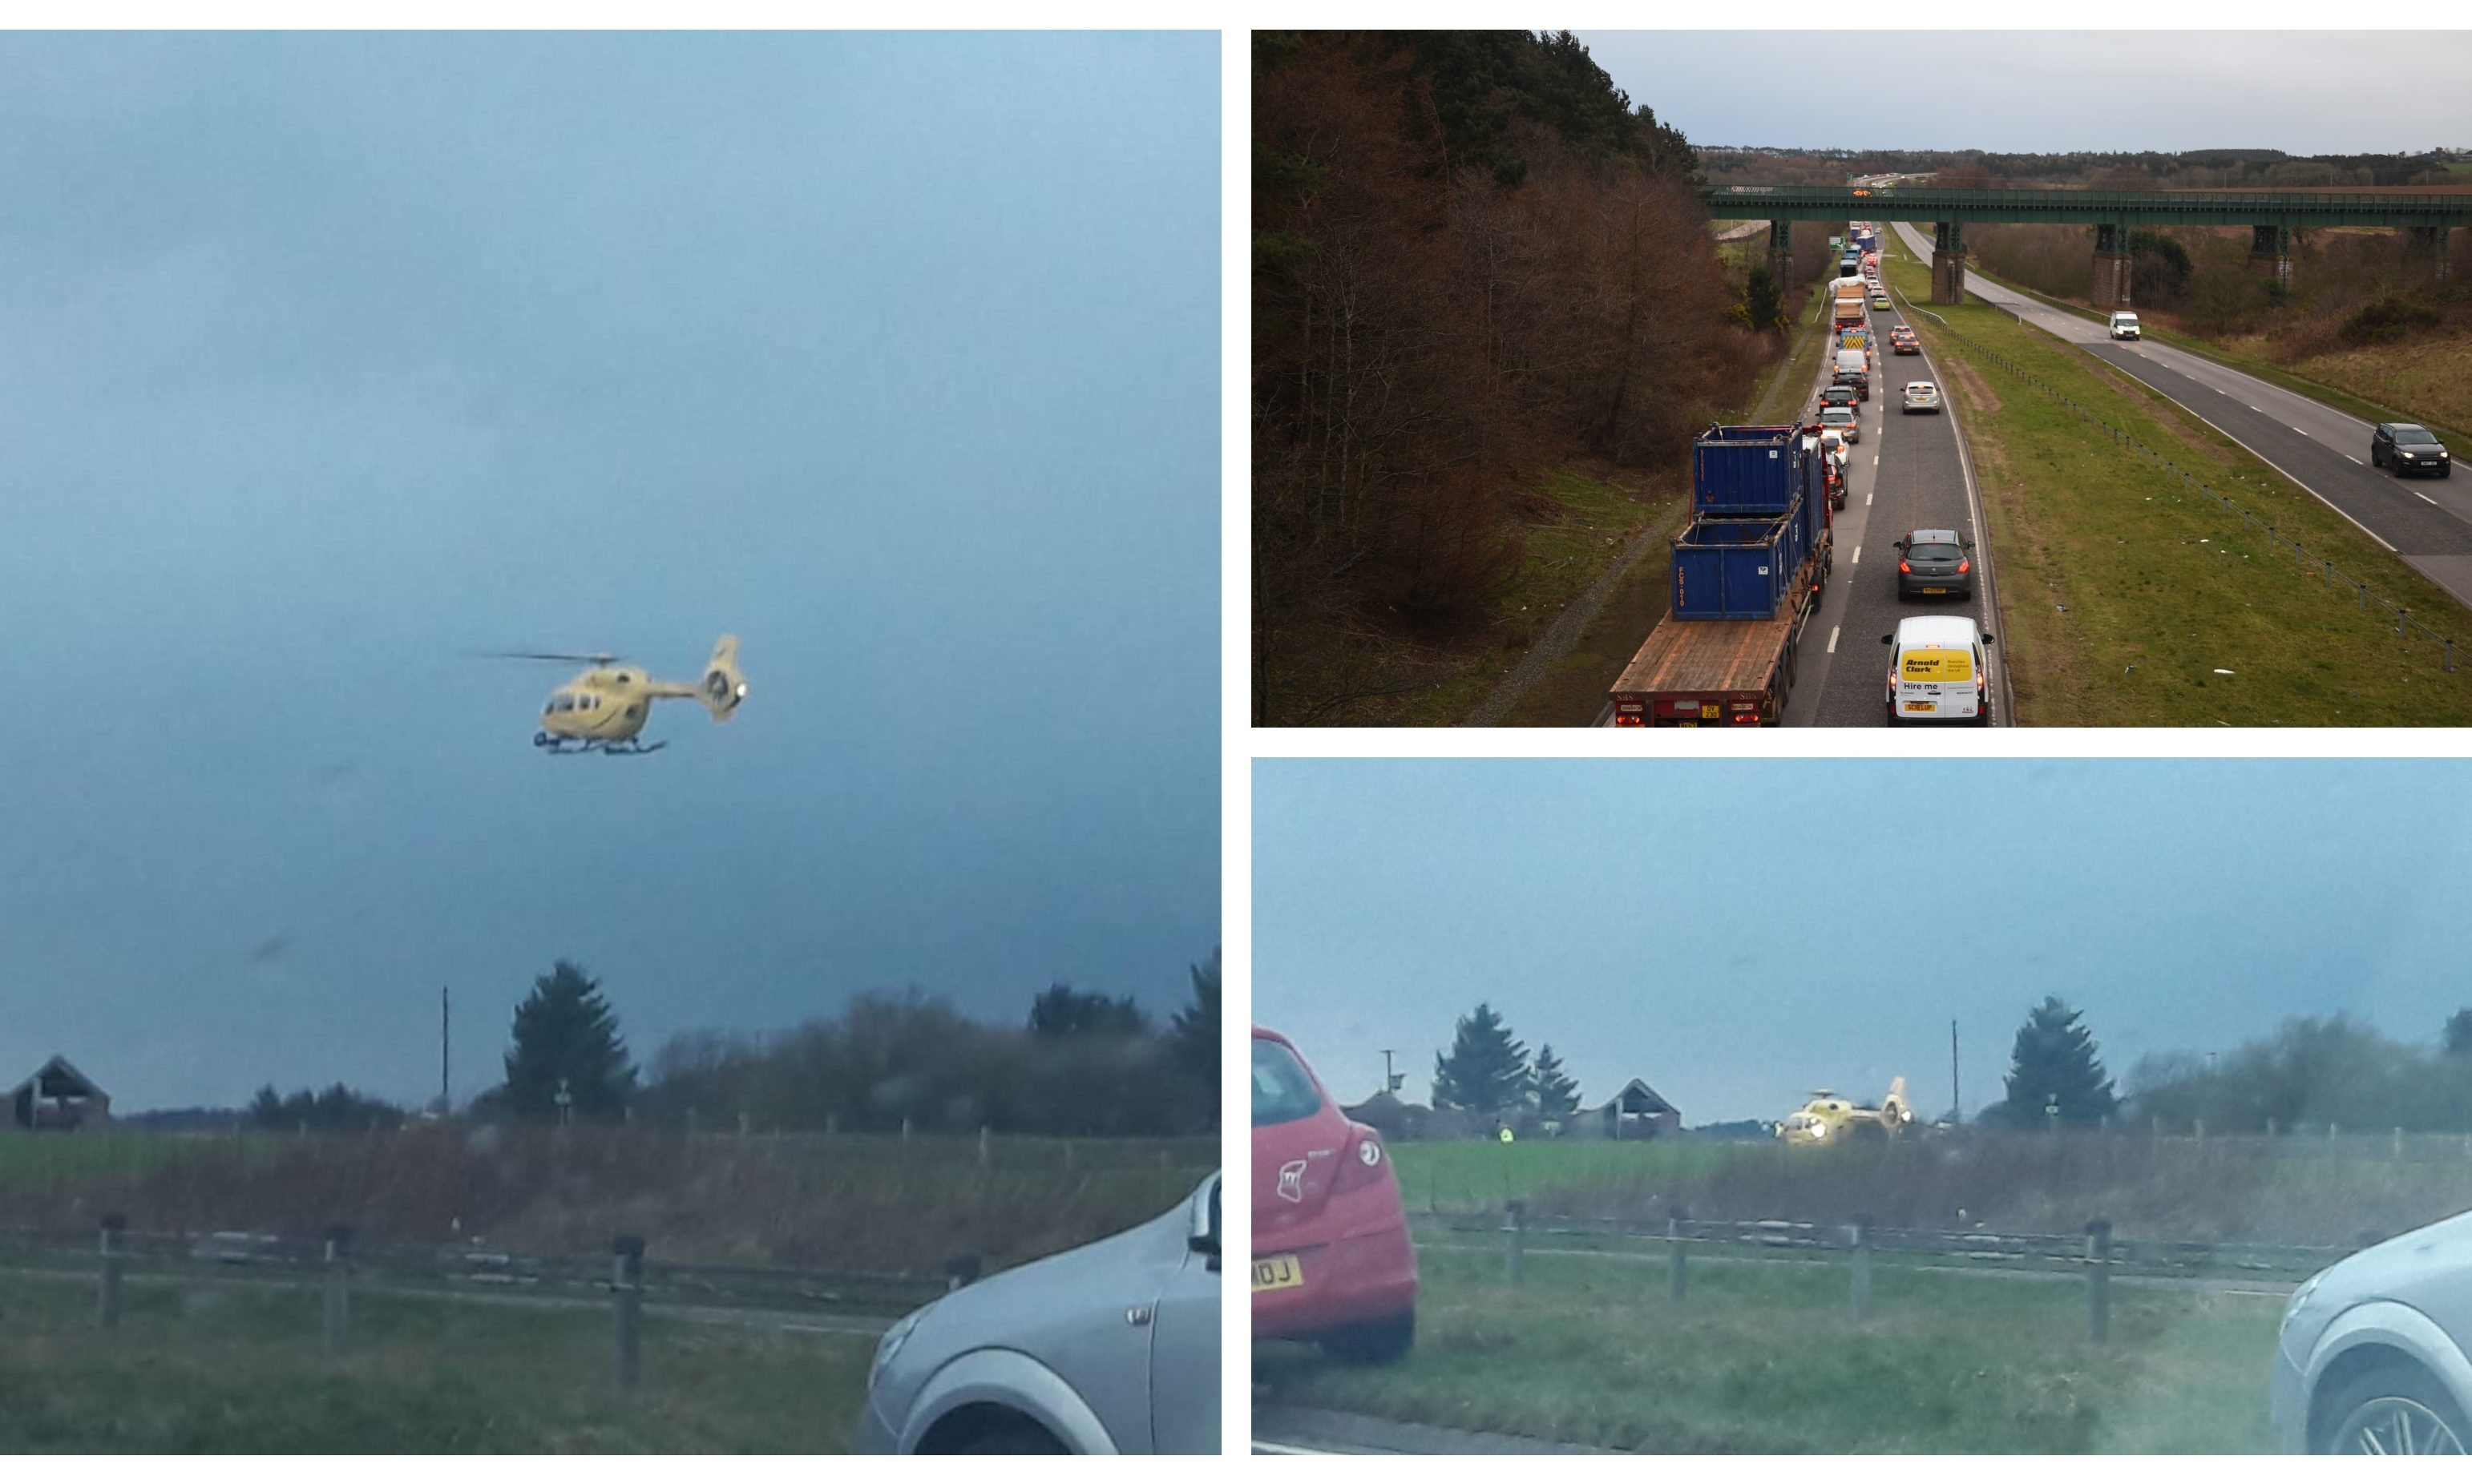 The air ambulance at the scene/traffic on the A90.